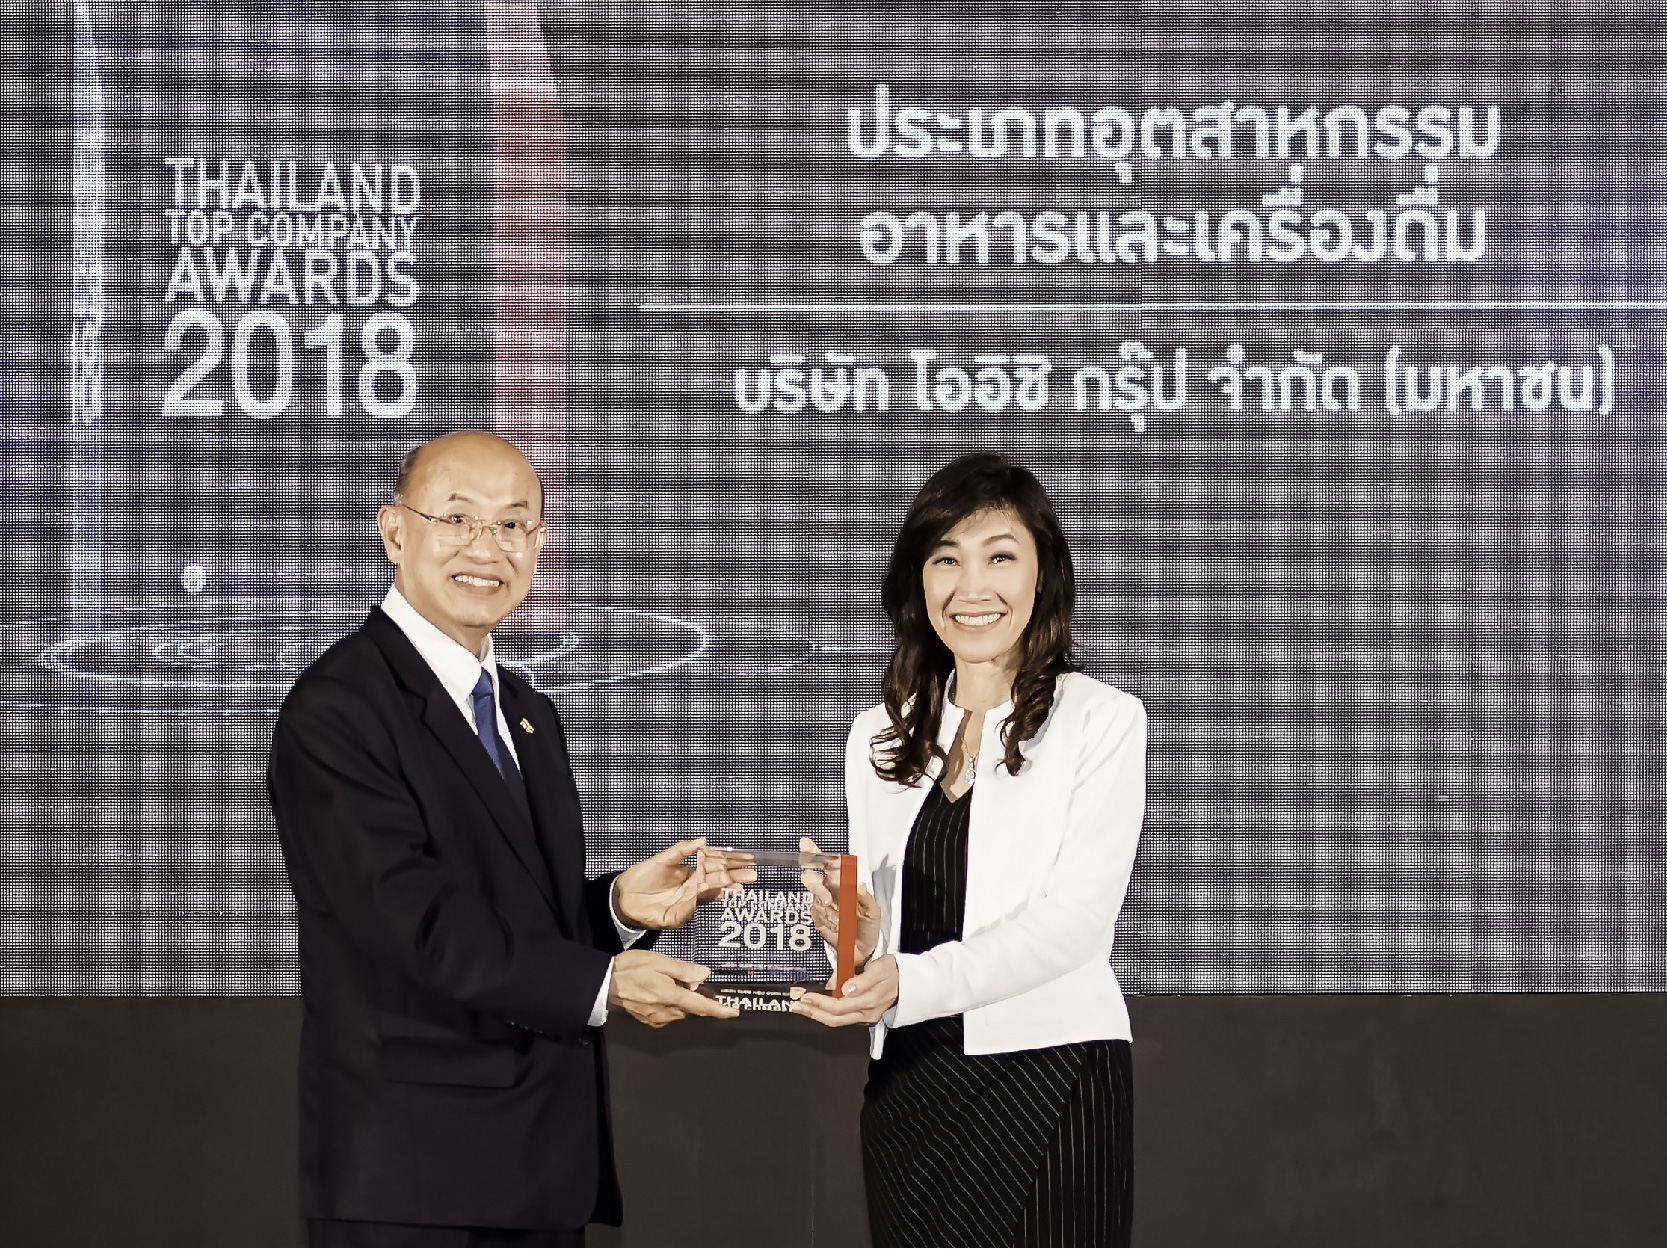 OISHI honoured at Thailand Top Company Awards 2018